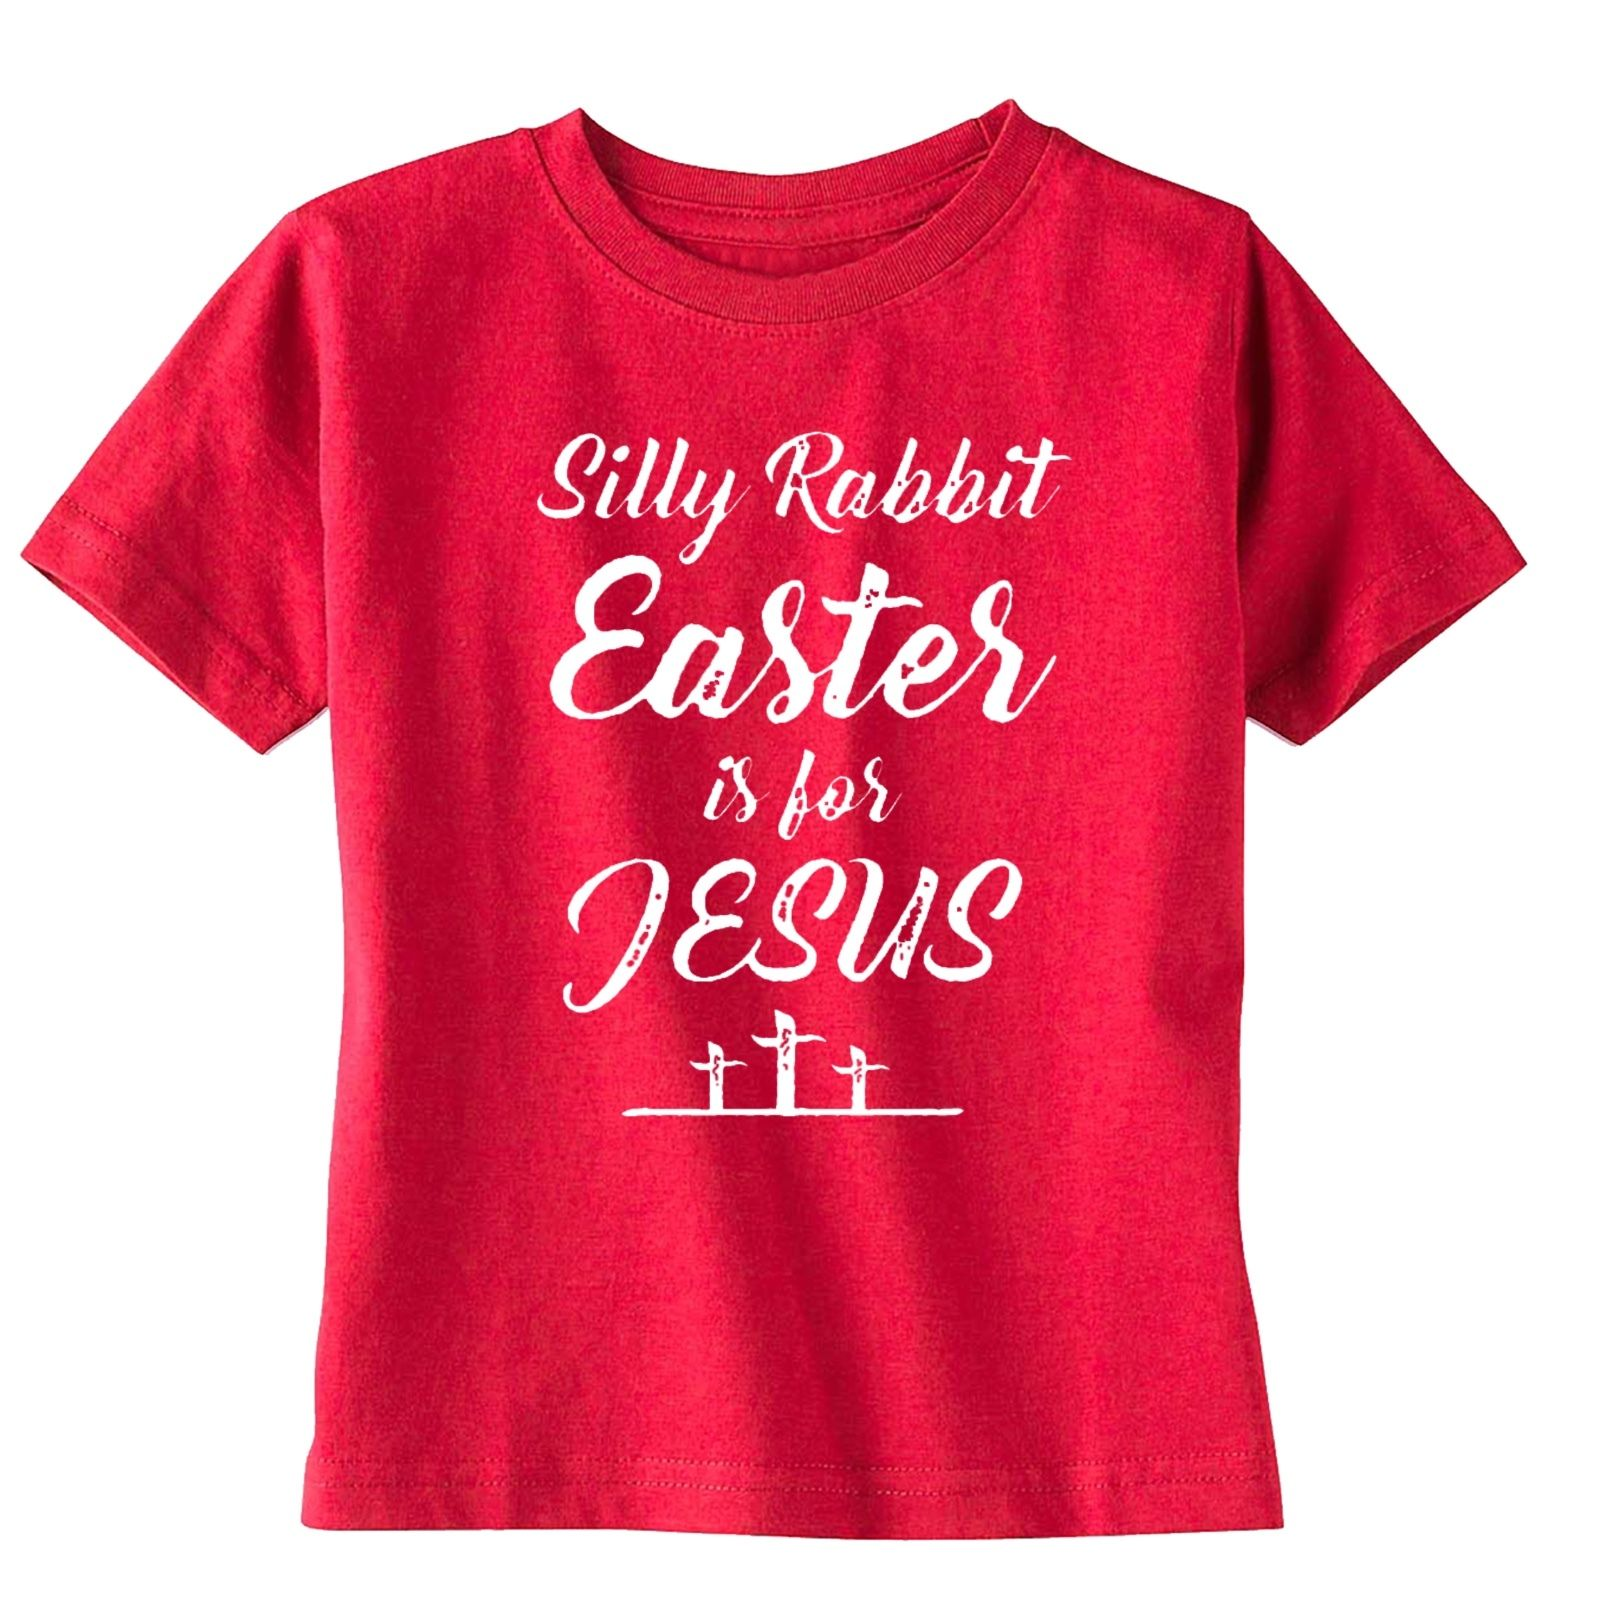 Silly Rabbit Easter is for Jesus Boys Short-Sleeve Tee